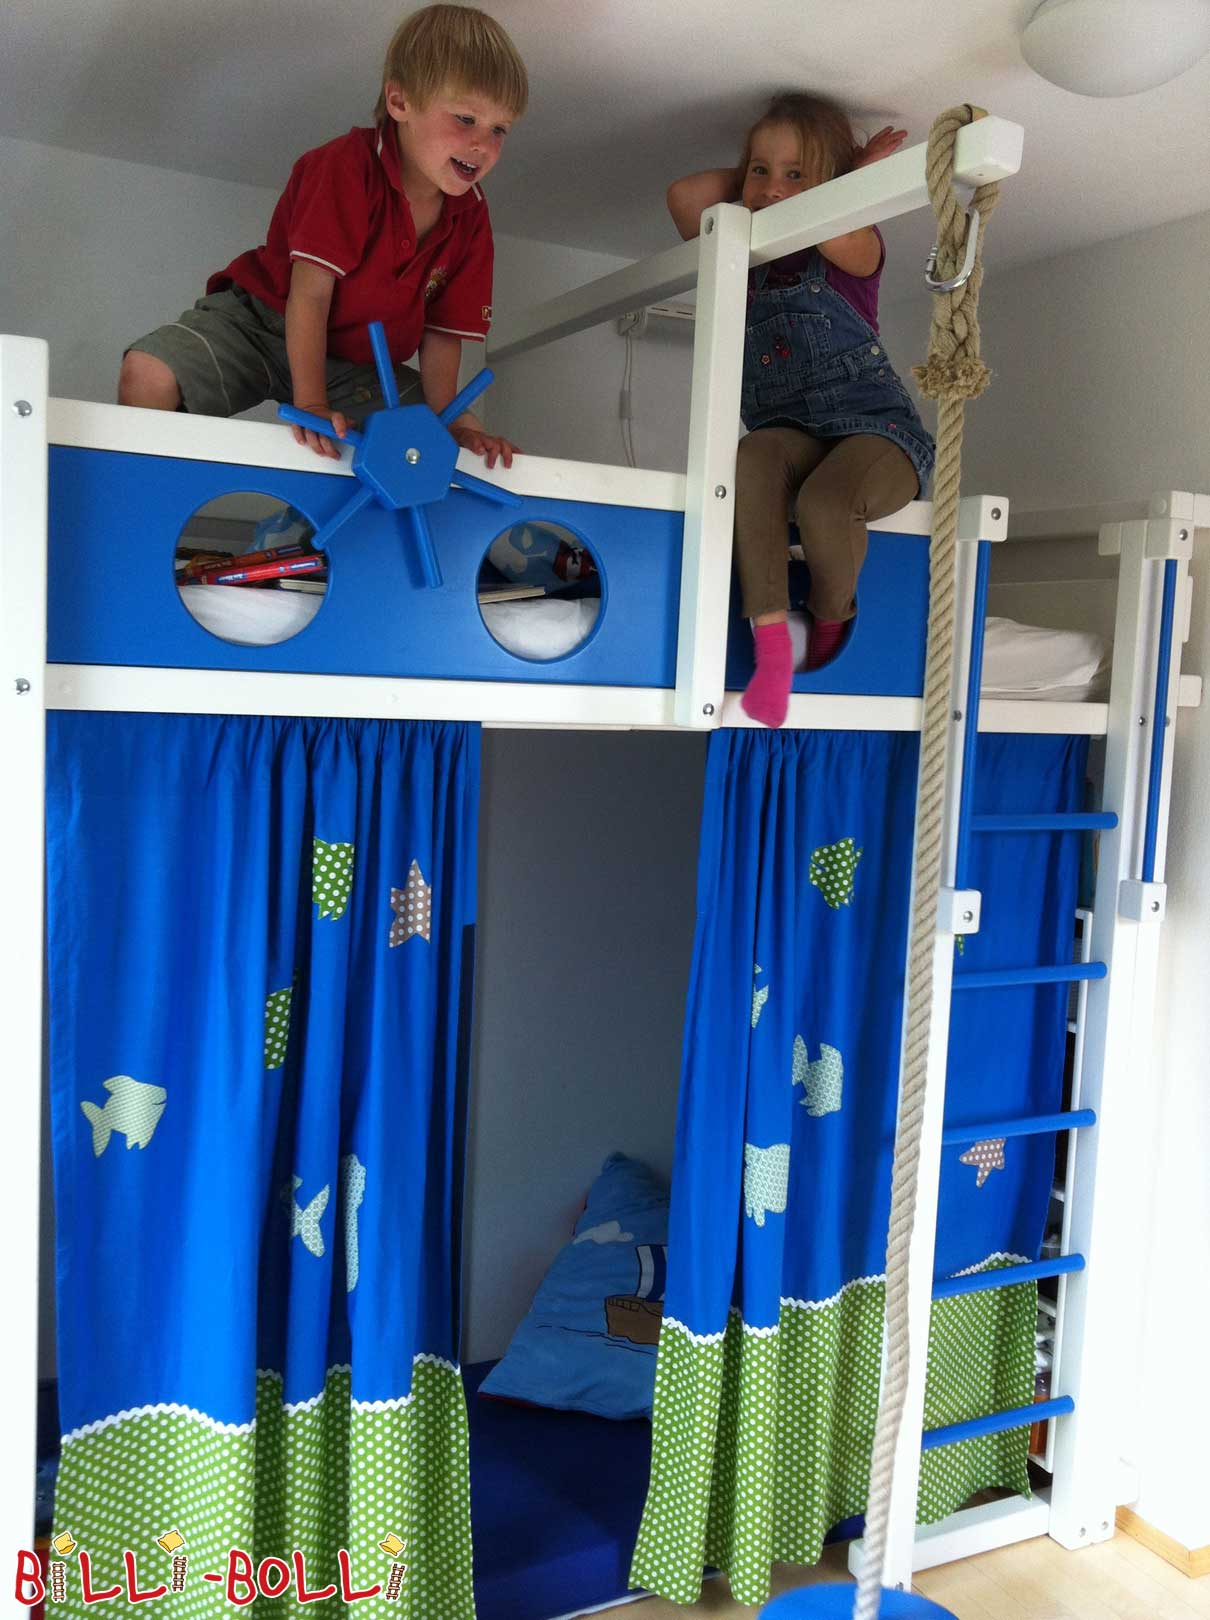 Billi-Bolli adventure bed growing with 90 x 200 cm pine white / blue (second hand loft bed)